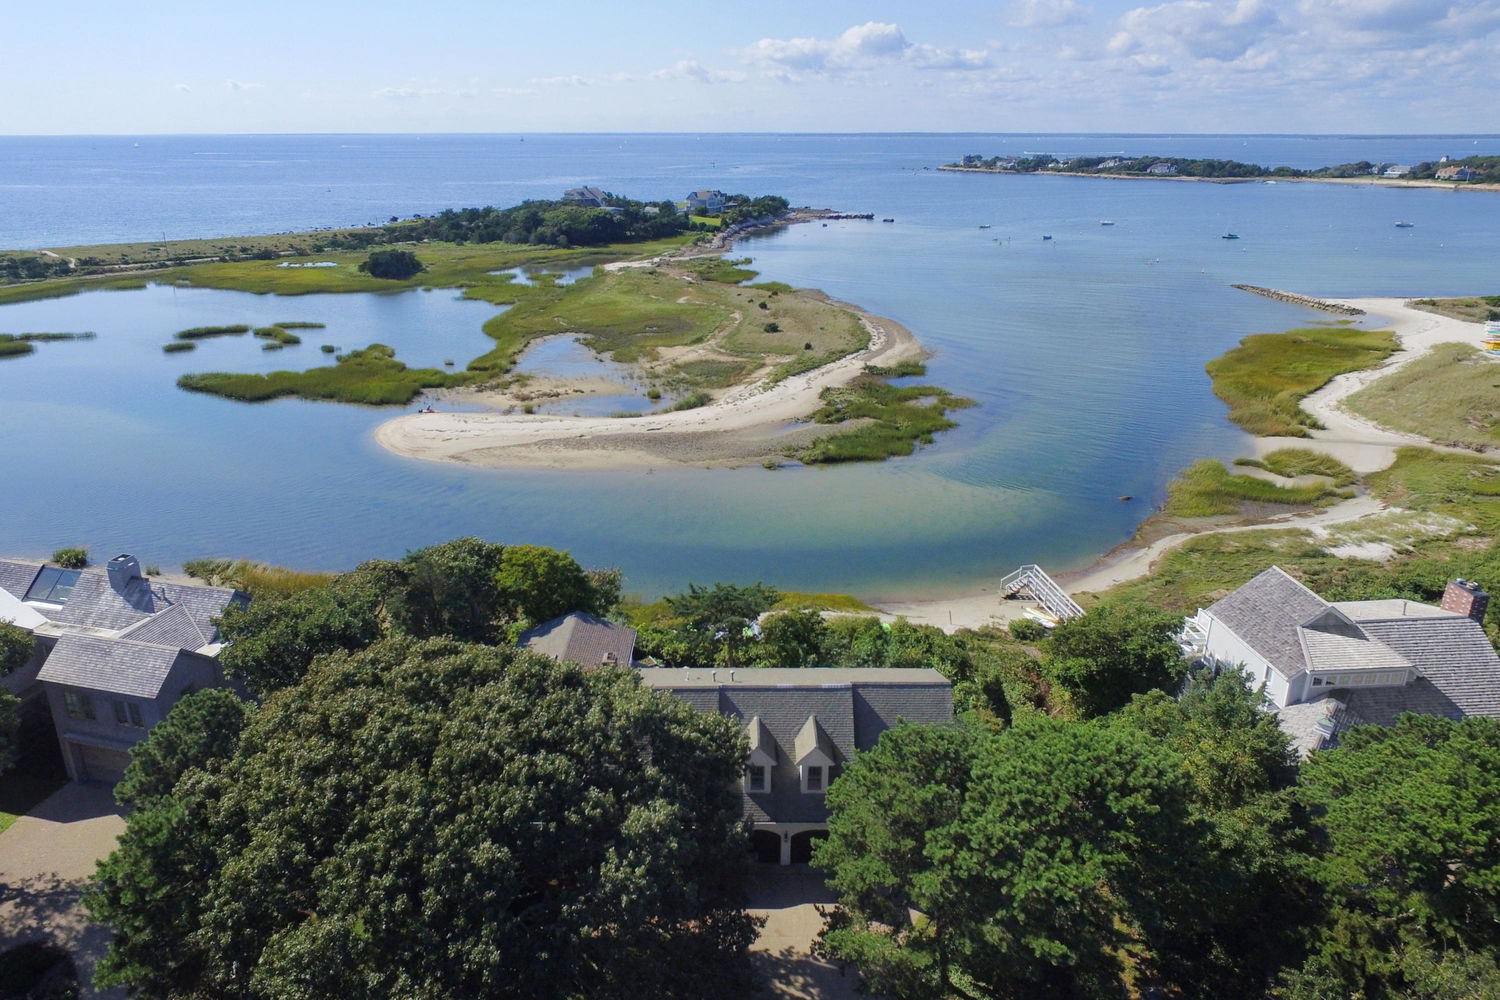 Aerial photograph of homes on the water in Falmouth, MA